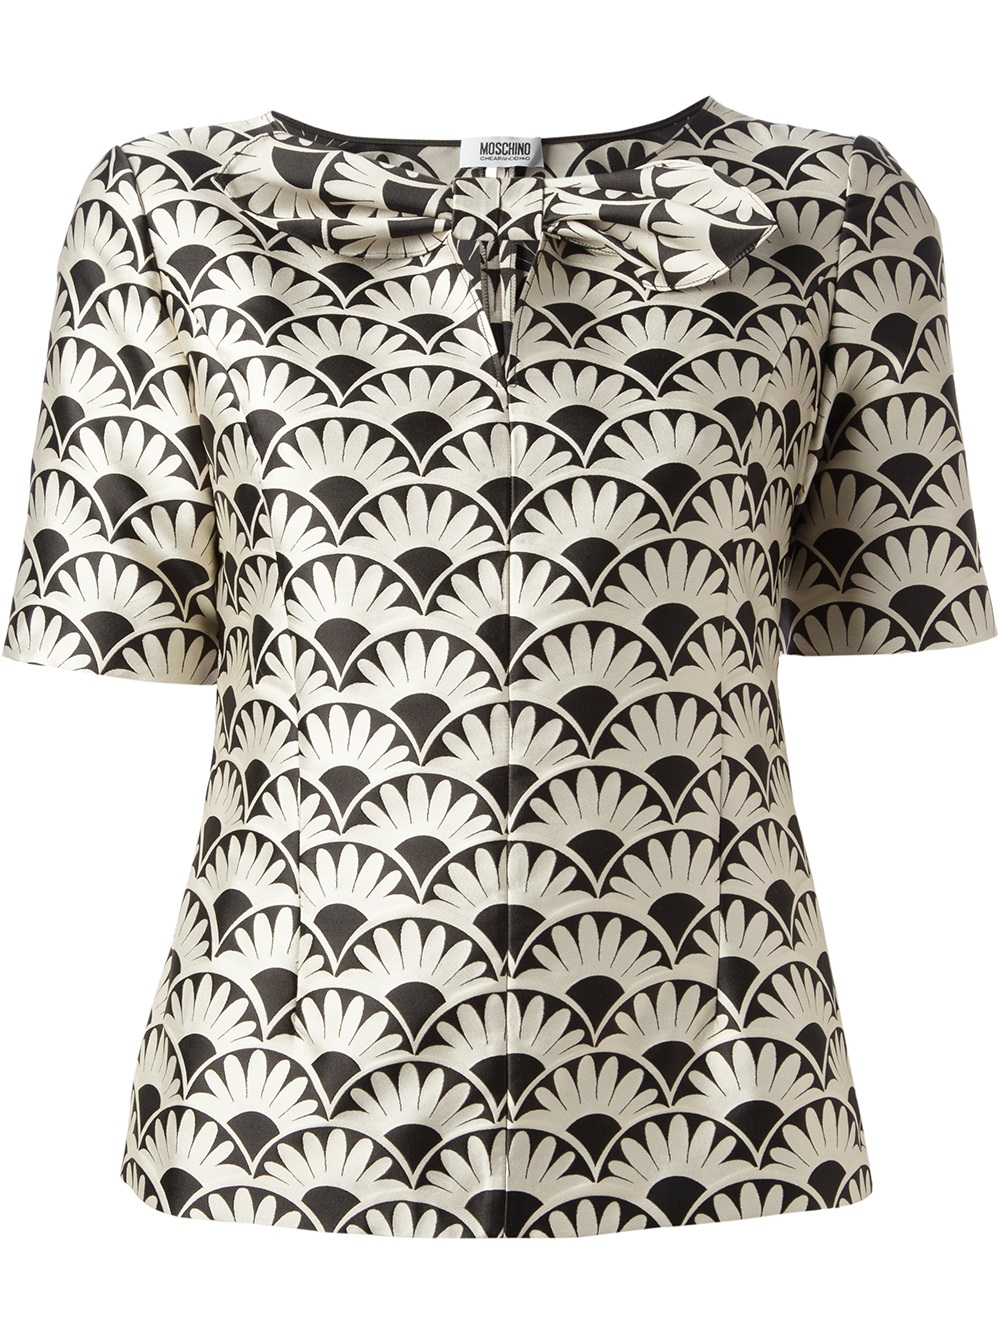 28040f483b3e5 Boutique Moschino Patterned Blouse in Black - Lyst